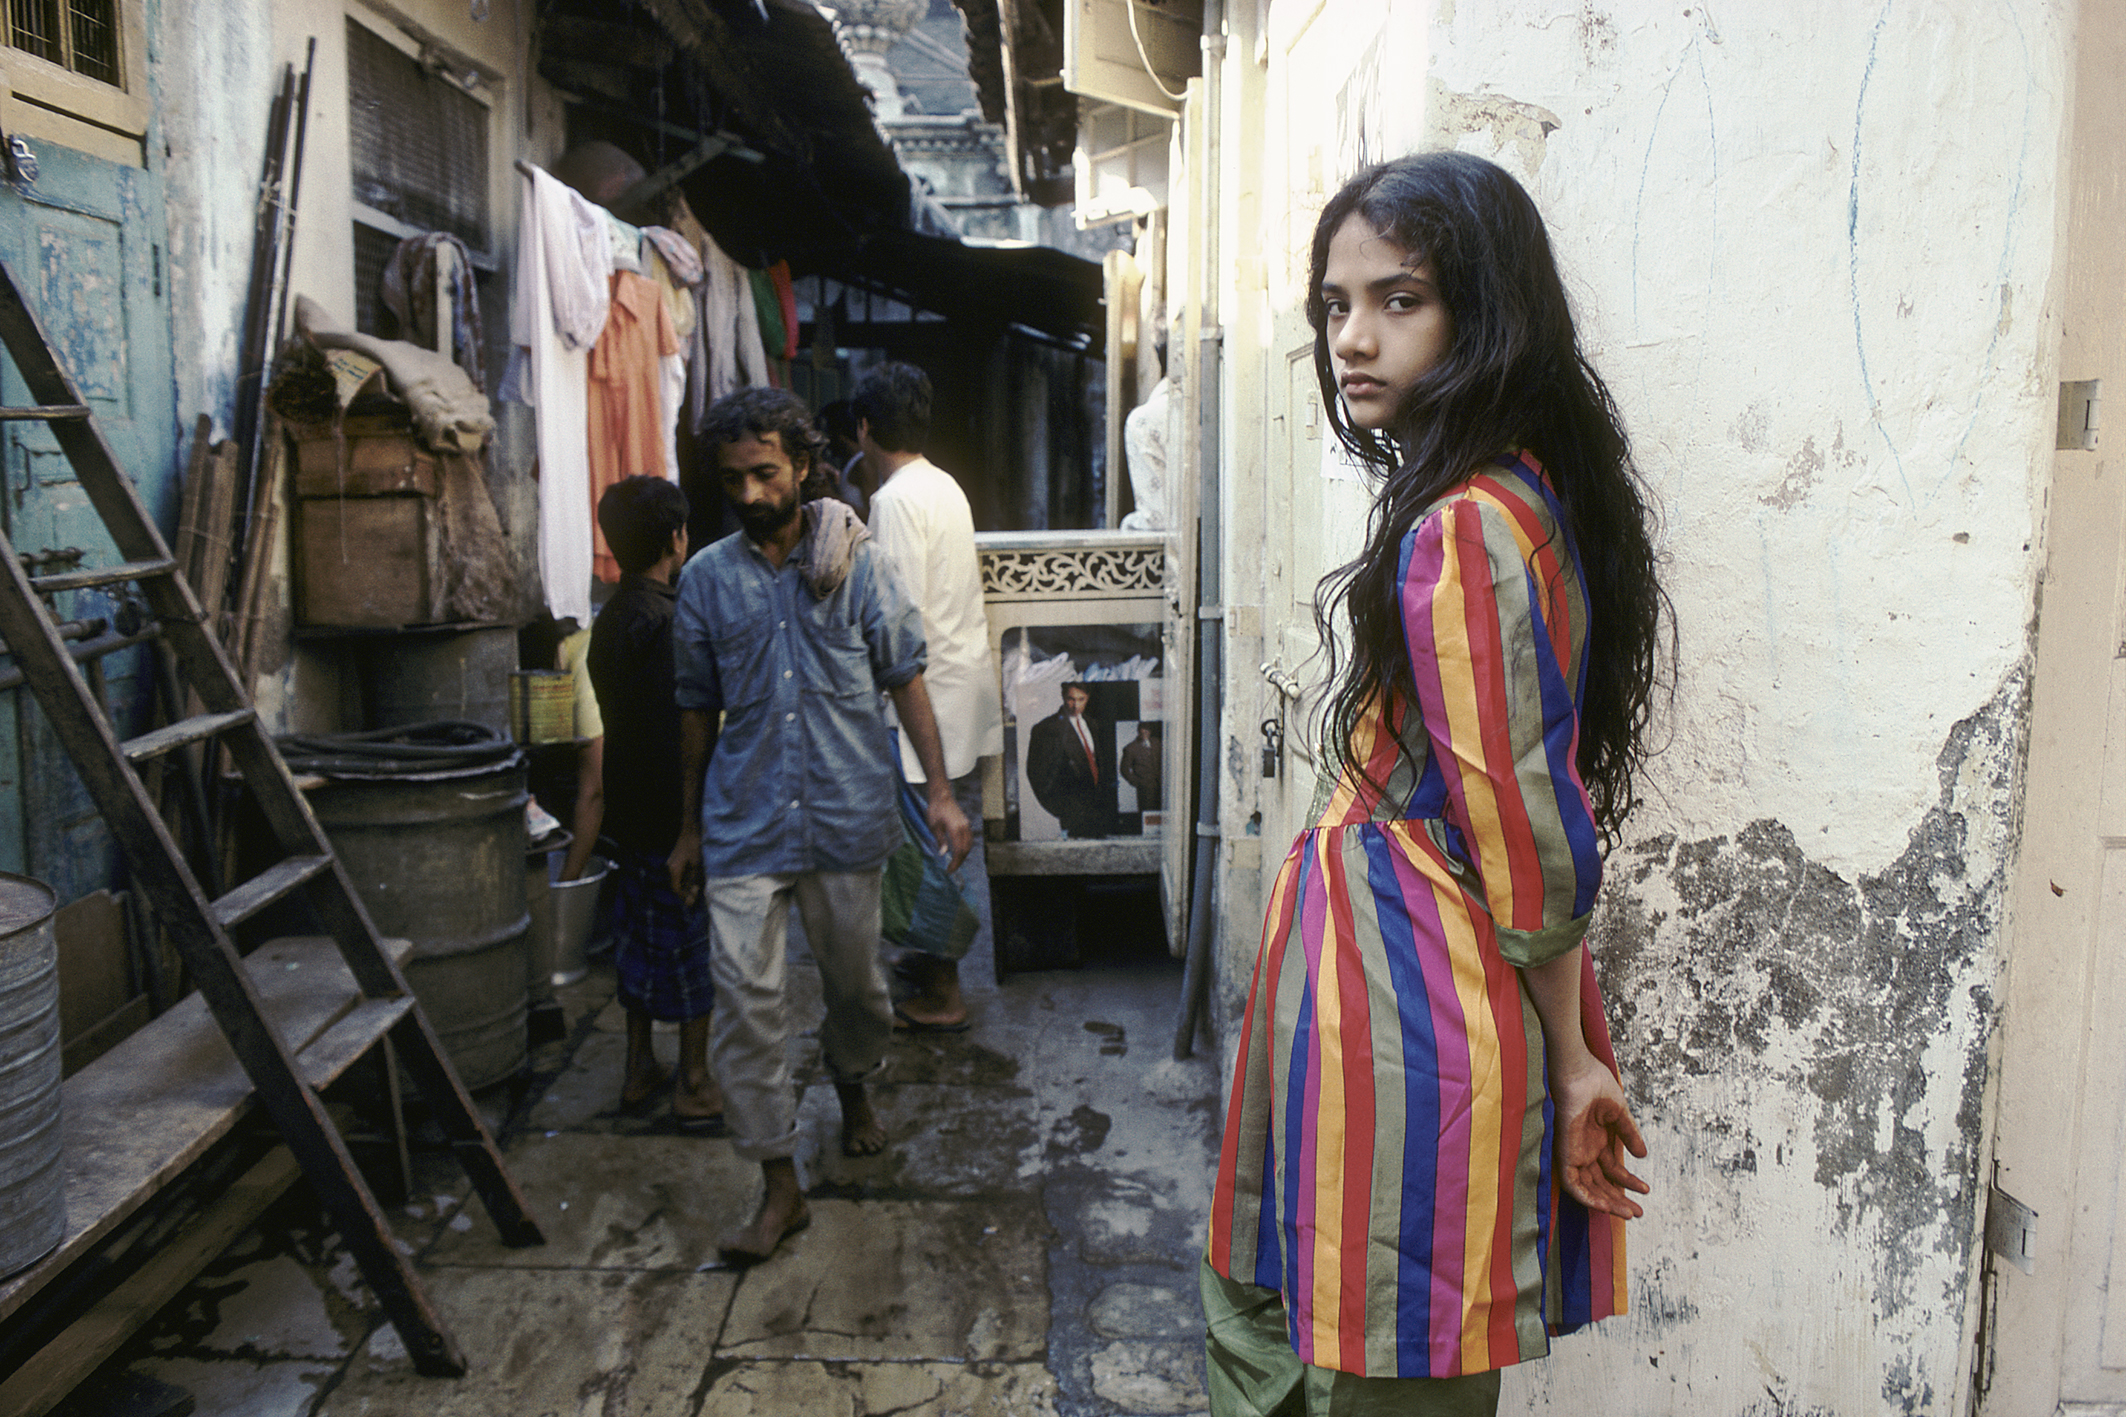 Raghubir Singh,  Muslim Girl, Nagpada, Bombay , c. 1990-1993. Chromogenic print. Photograph copyright © 2017 Succession Raghubir Singh, Courtesy Howard Greenberg Gallery